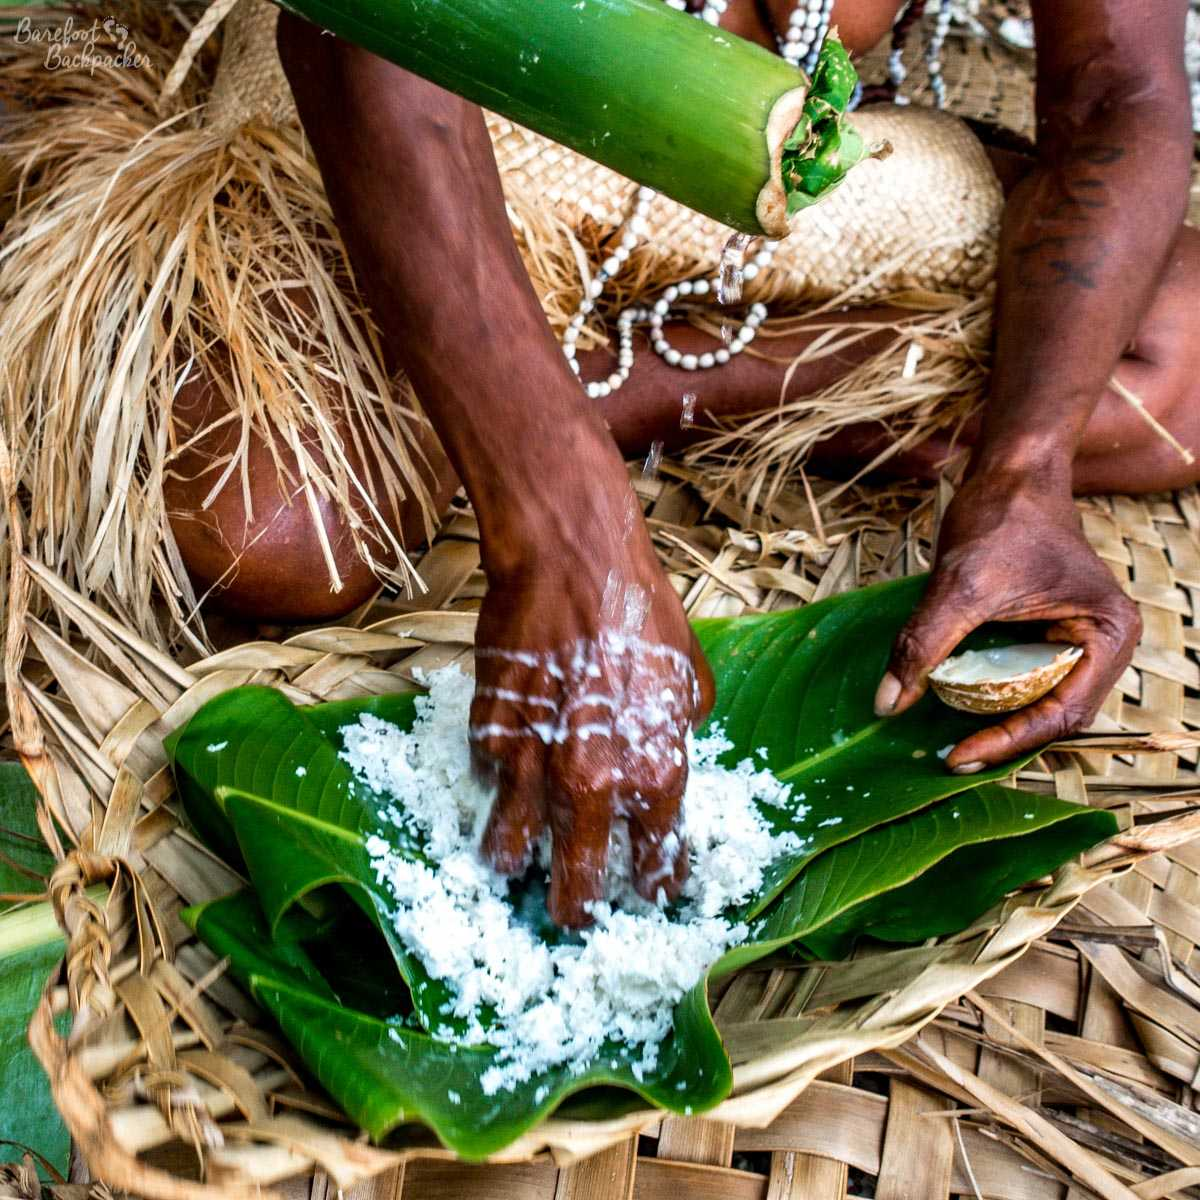 A tribeswoman making coconut milk.